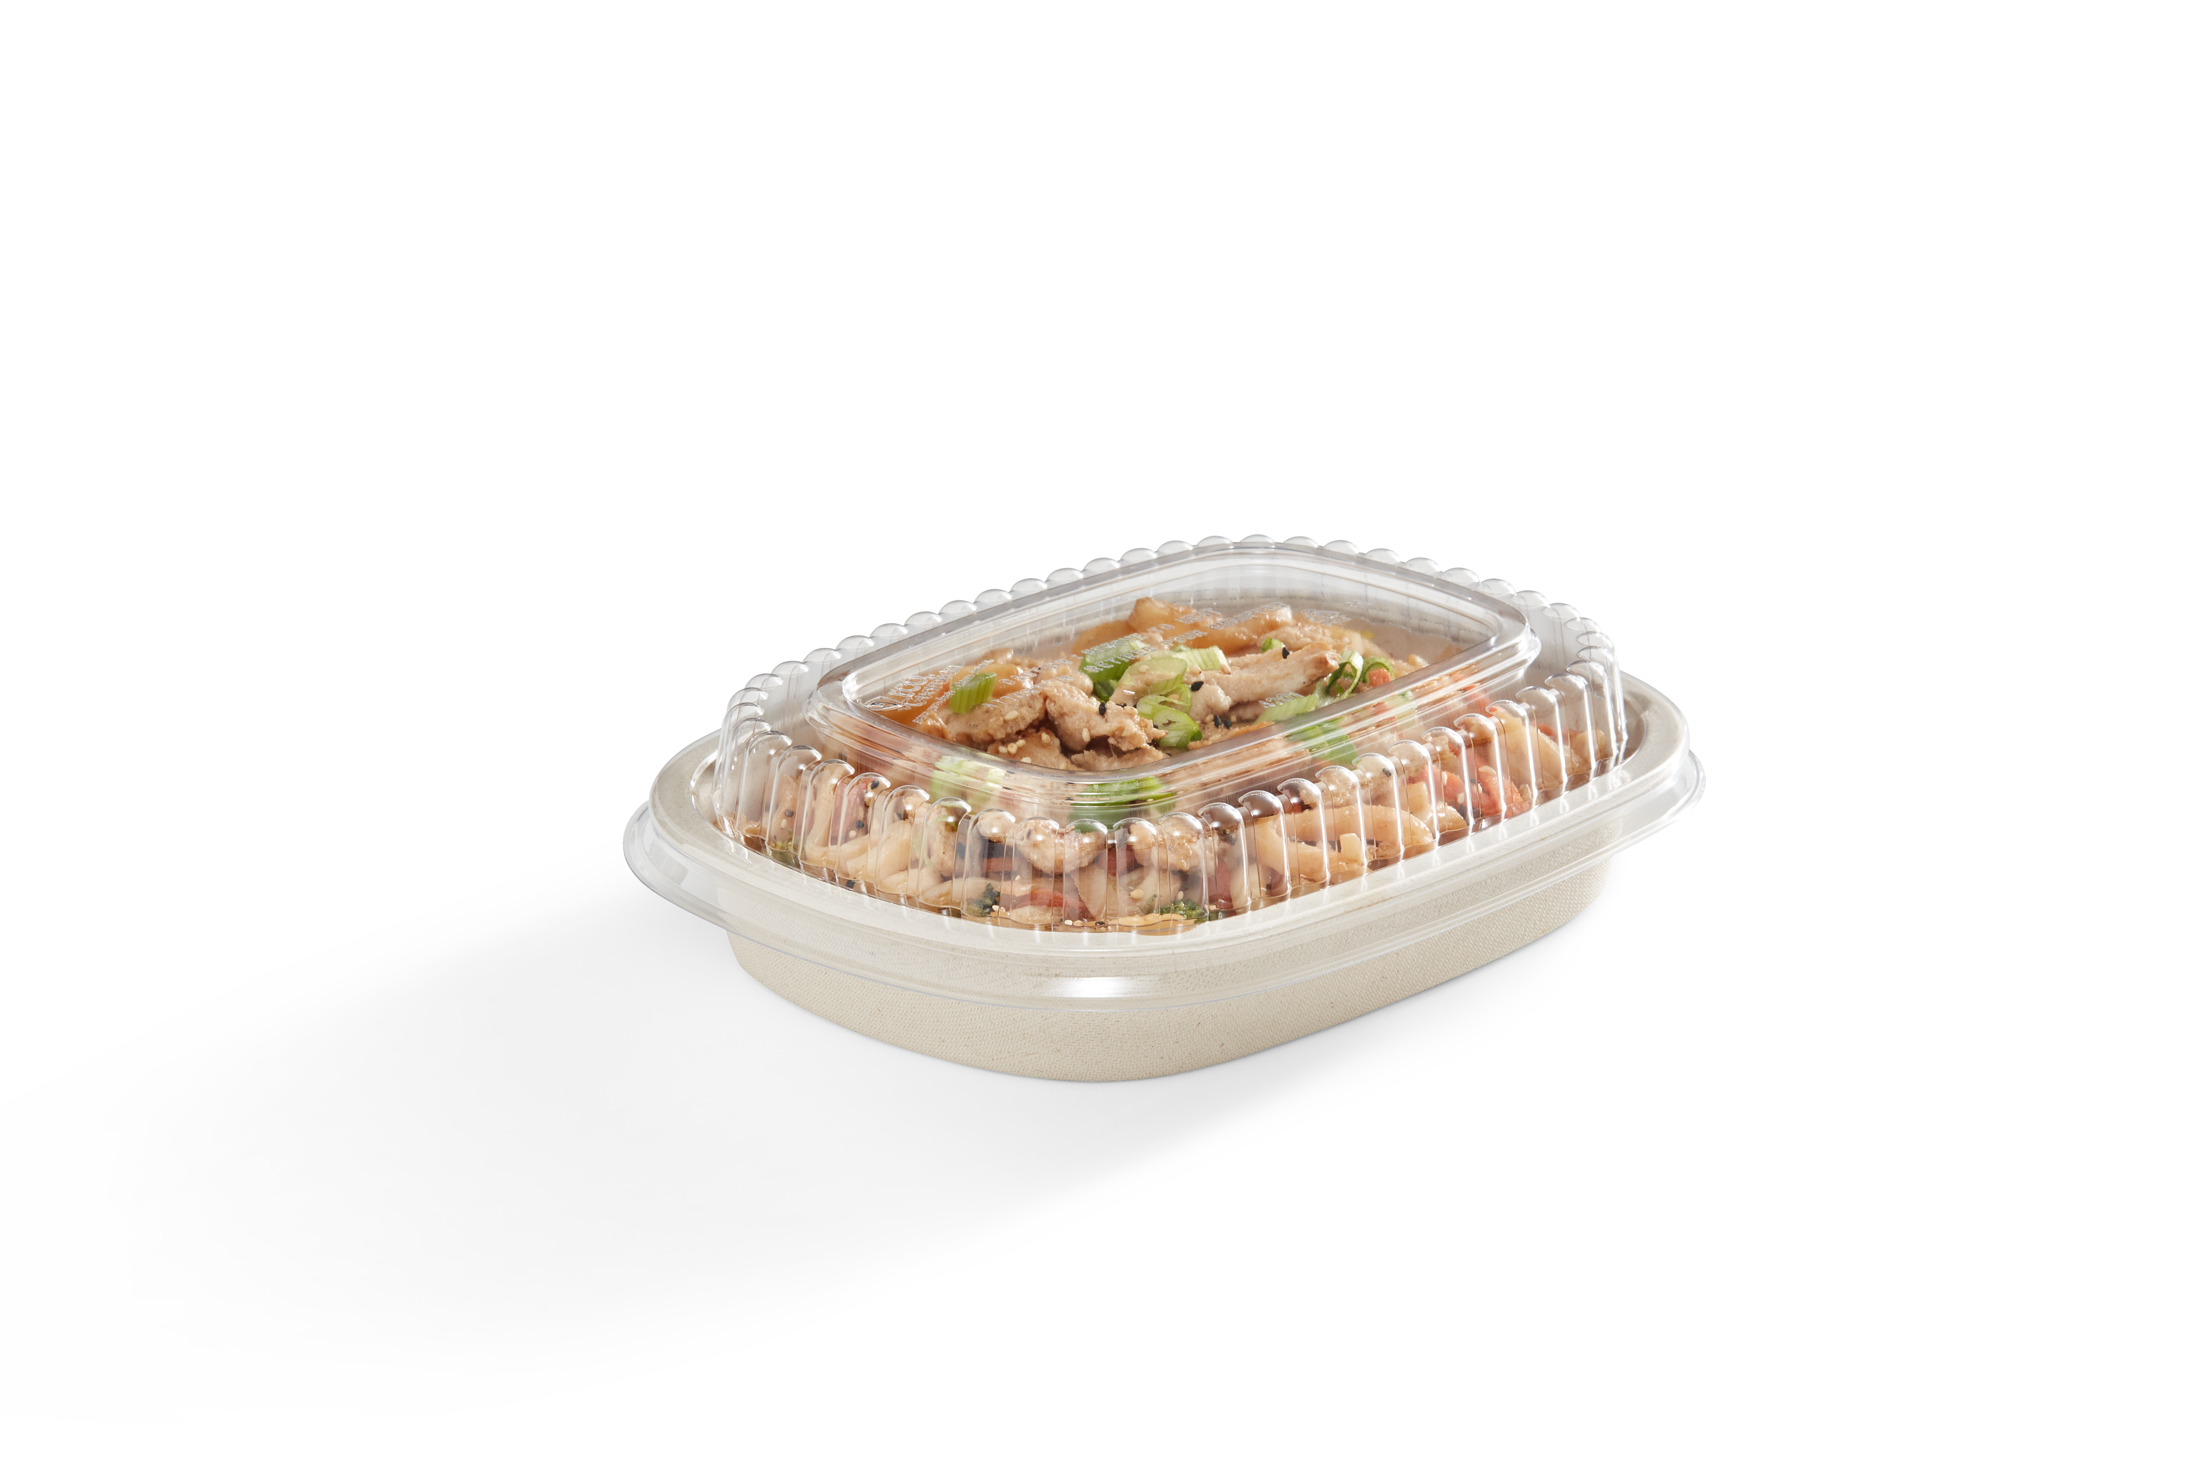 EG-BG-S022-LID-FOOD 22 oz Oval Tray